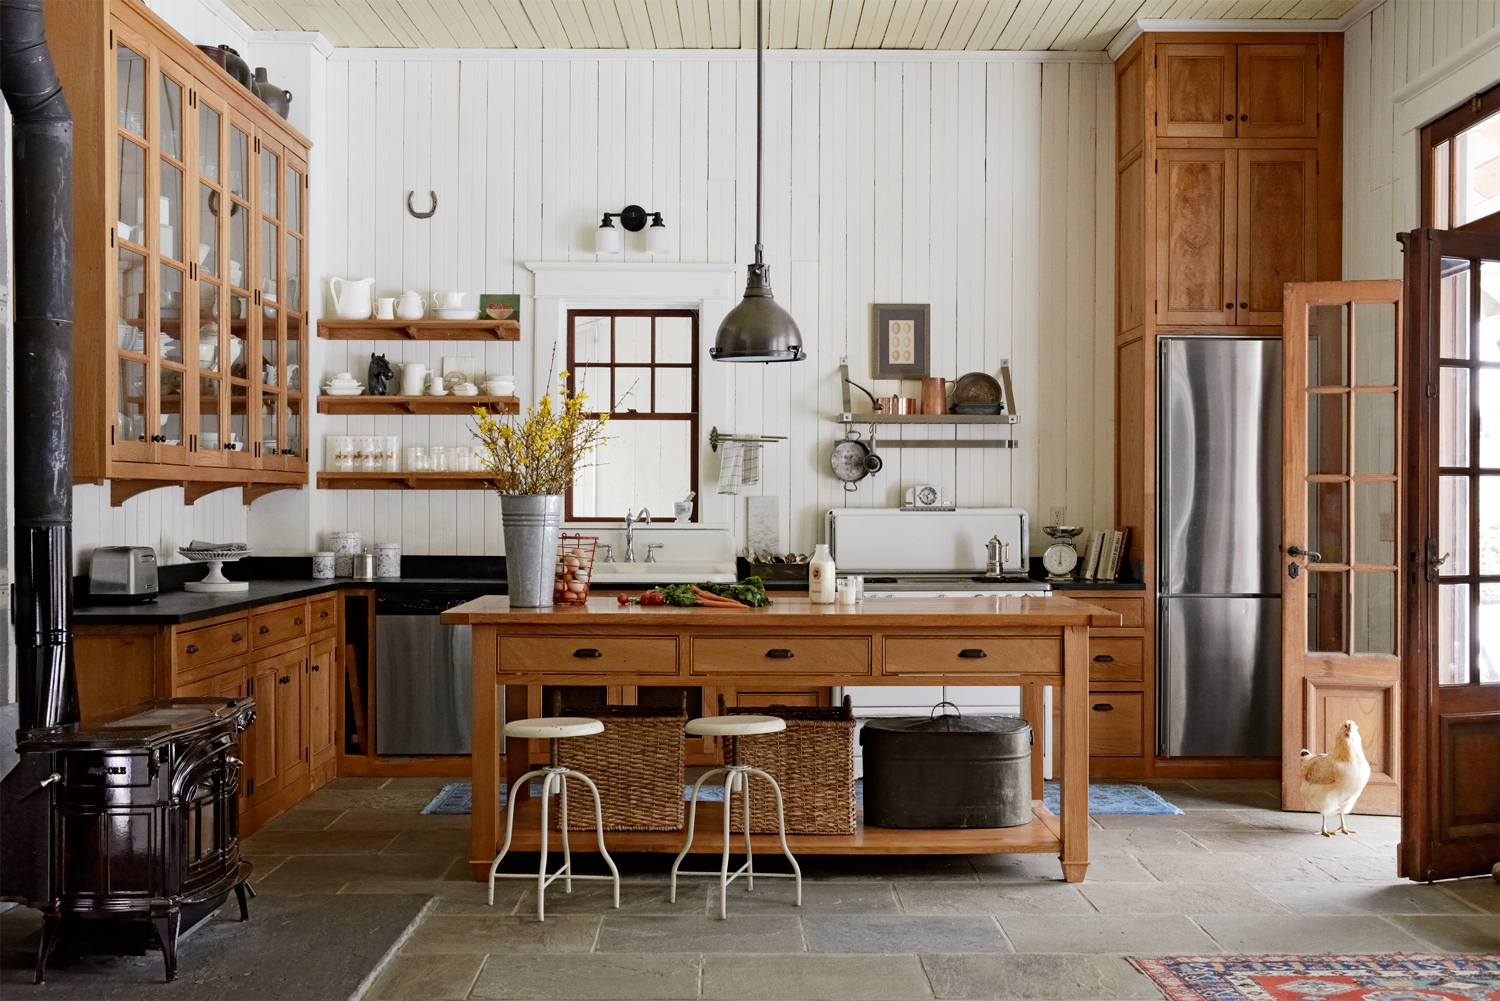 Old Country Kitchen Decor Ideas